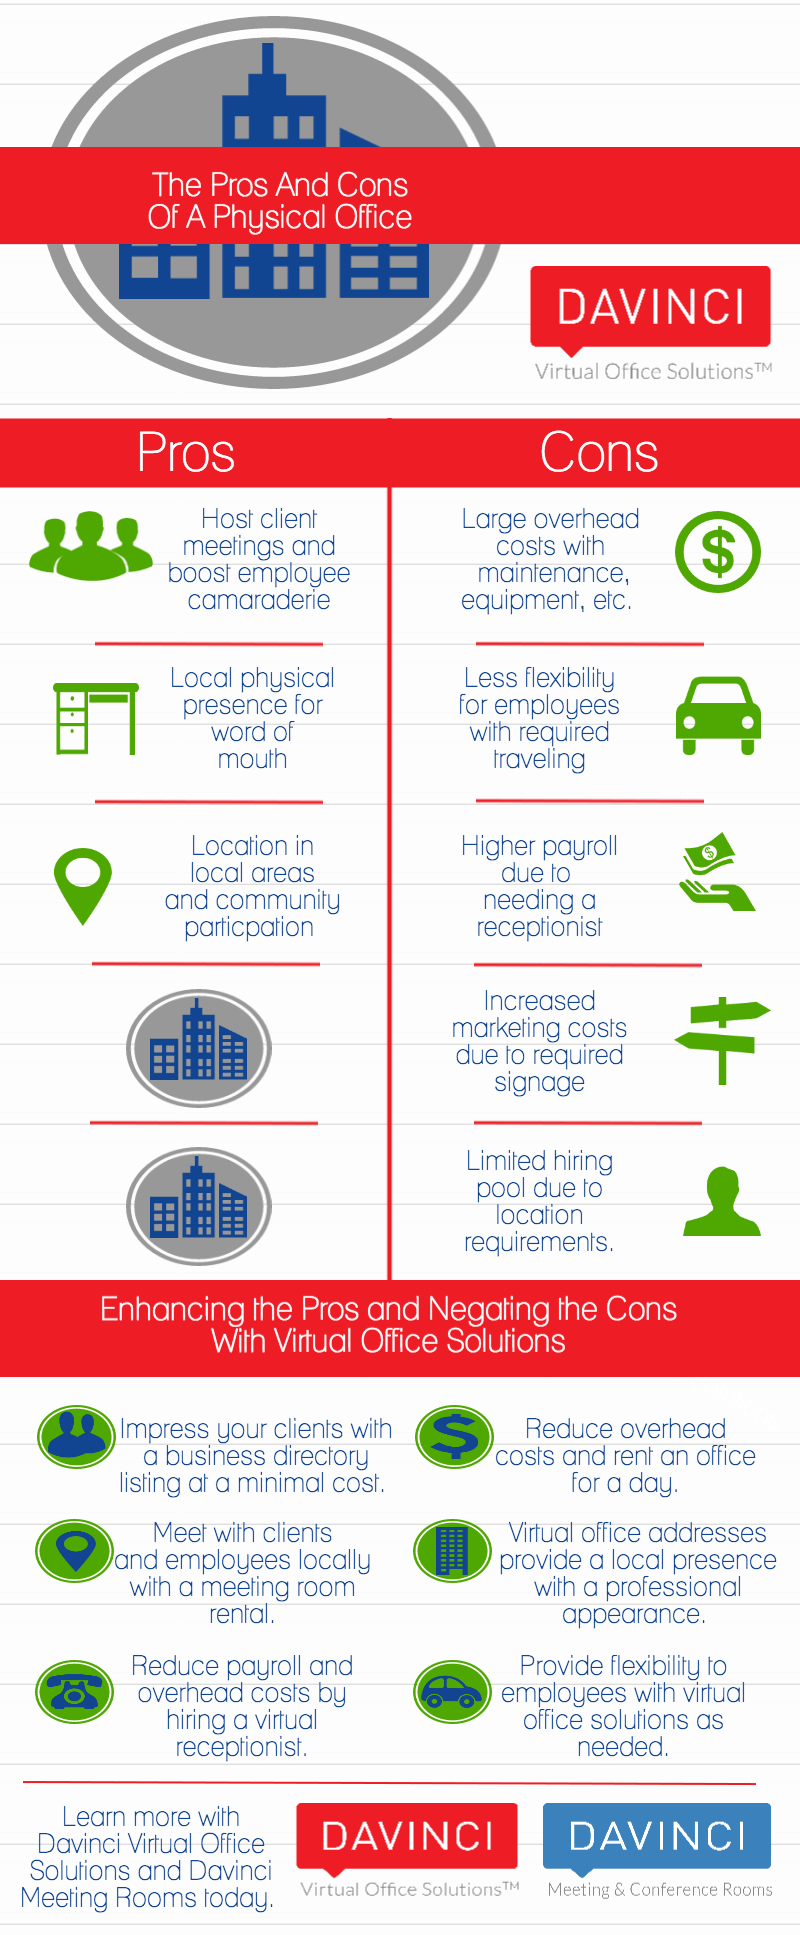 The Pros And Cons Of A Physical Office